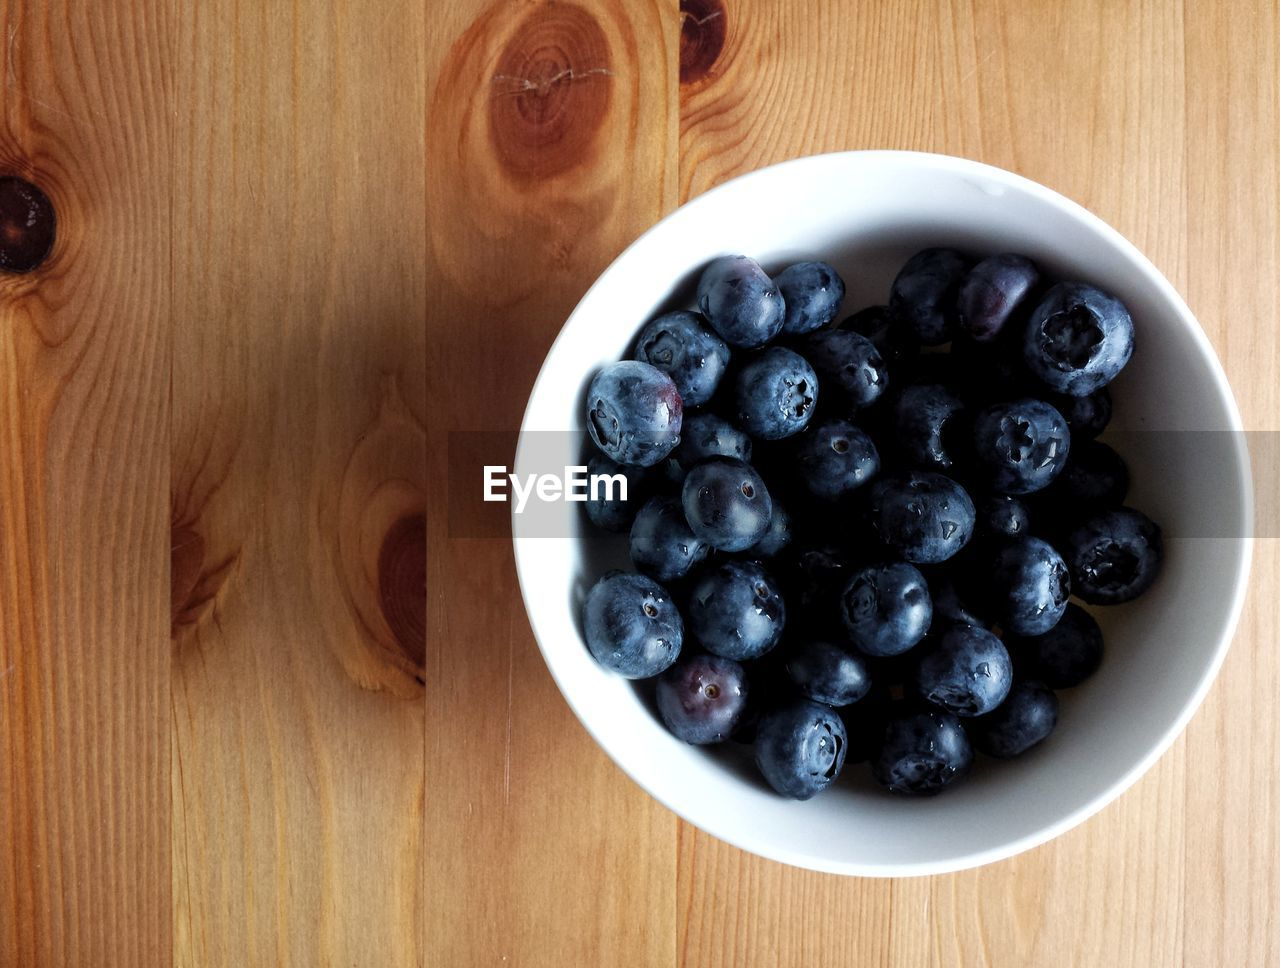 table, food and drink, blueberry, fruit, food, high angle view, freshness, indoors, directly above, bowl, wood - material, no people, healthy eating, sweet food, close-up, day